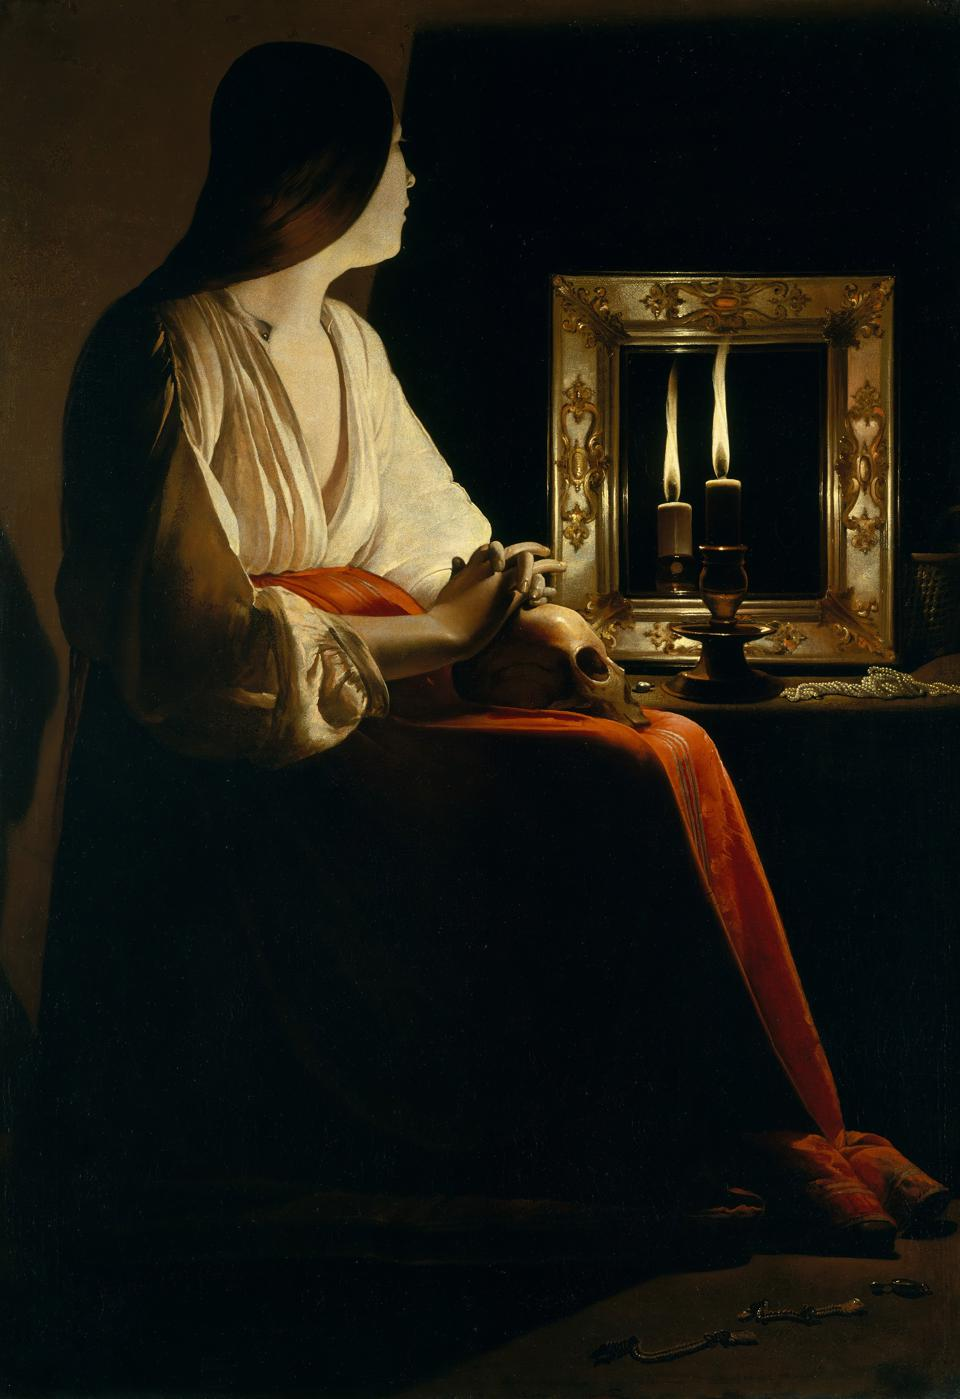 Penitent Magdalen painting by Georges de la tour Milan Palazzo Reale Milan Italy